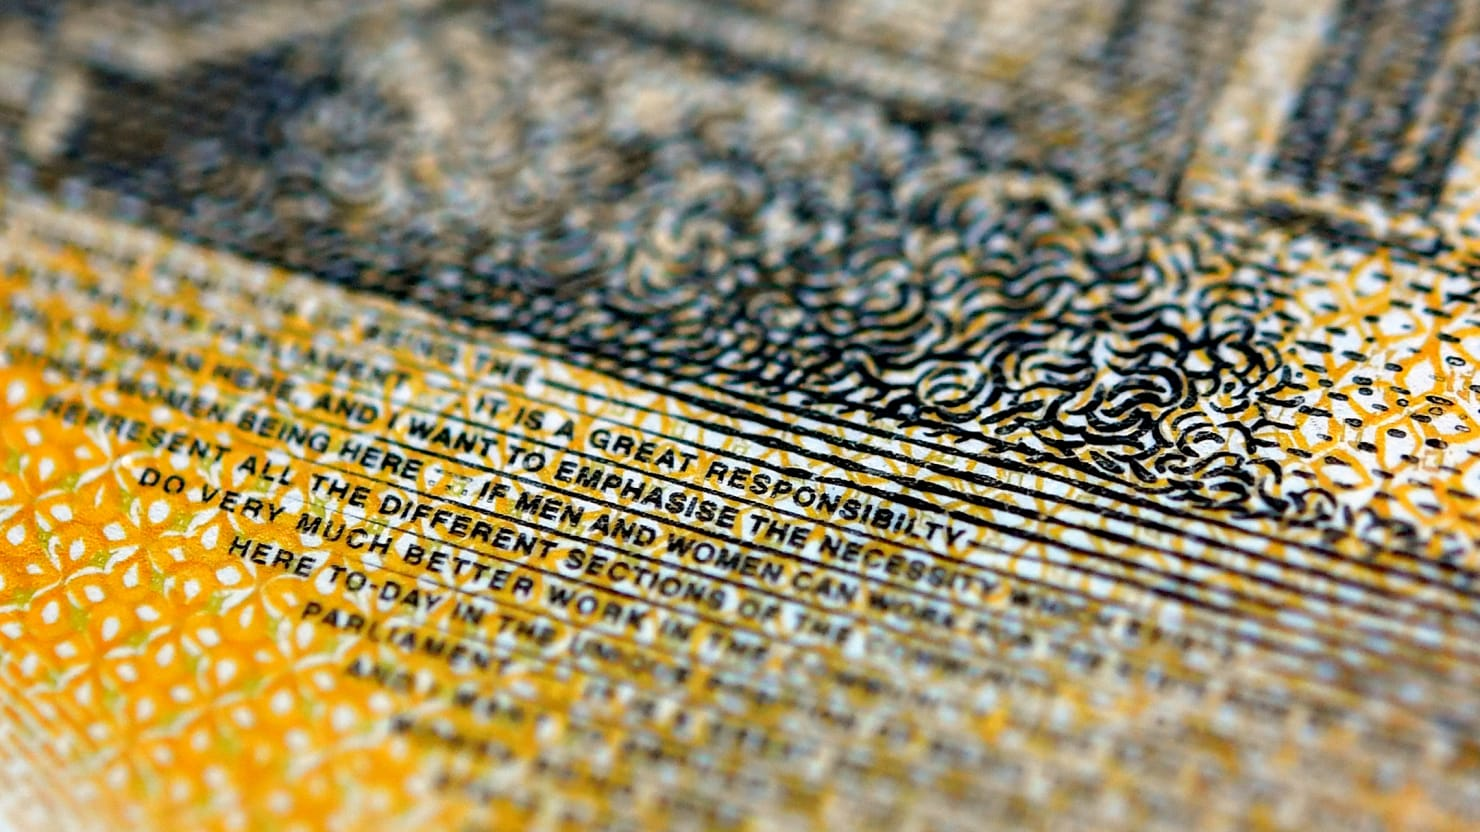 Australia Makes Typo on $50 Note, Only Notices After Printing It 46 Million Times